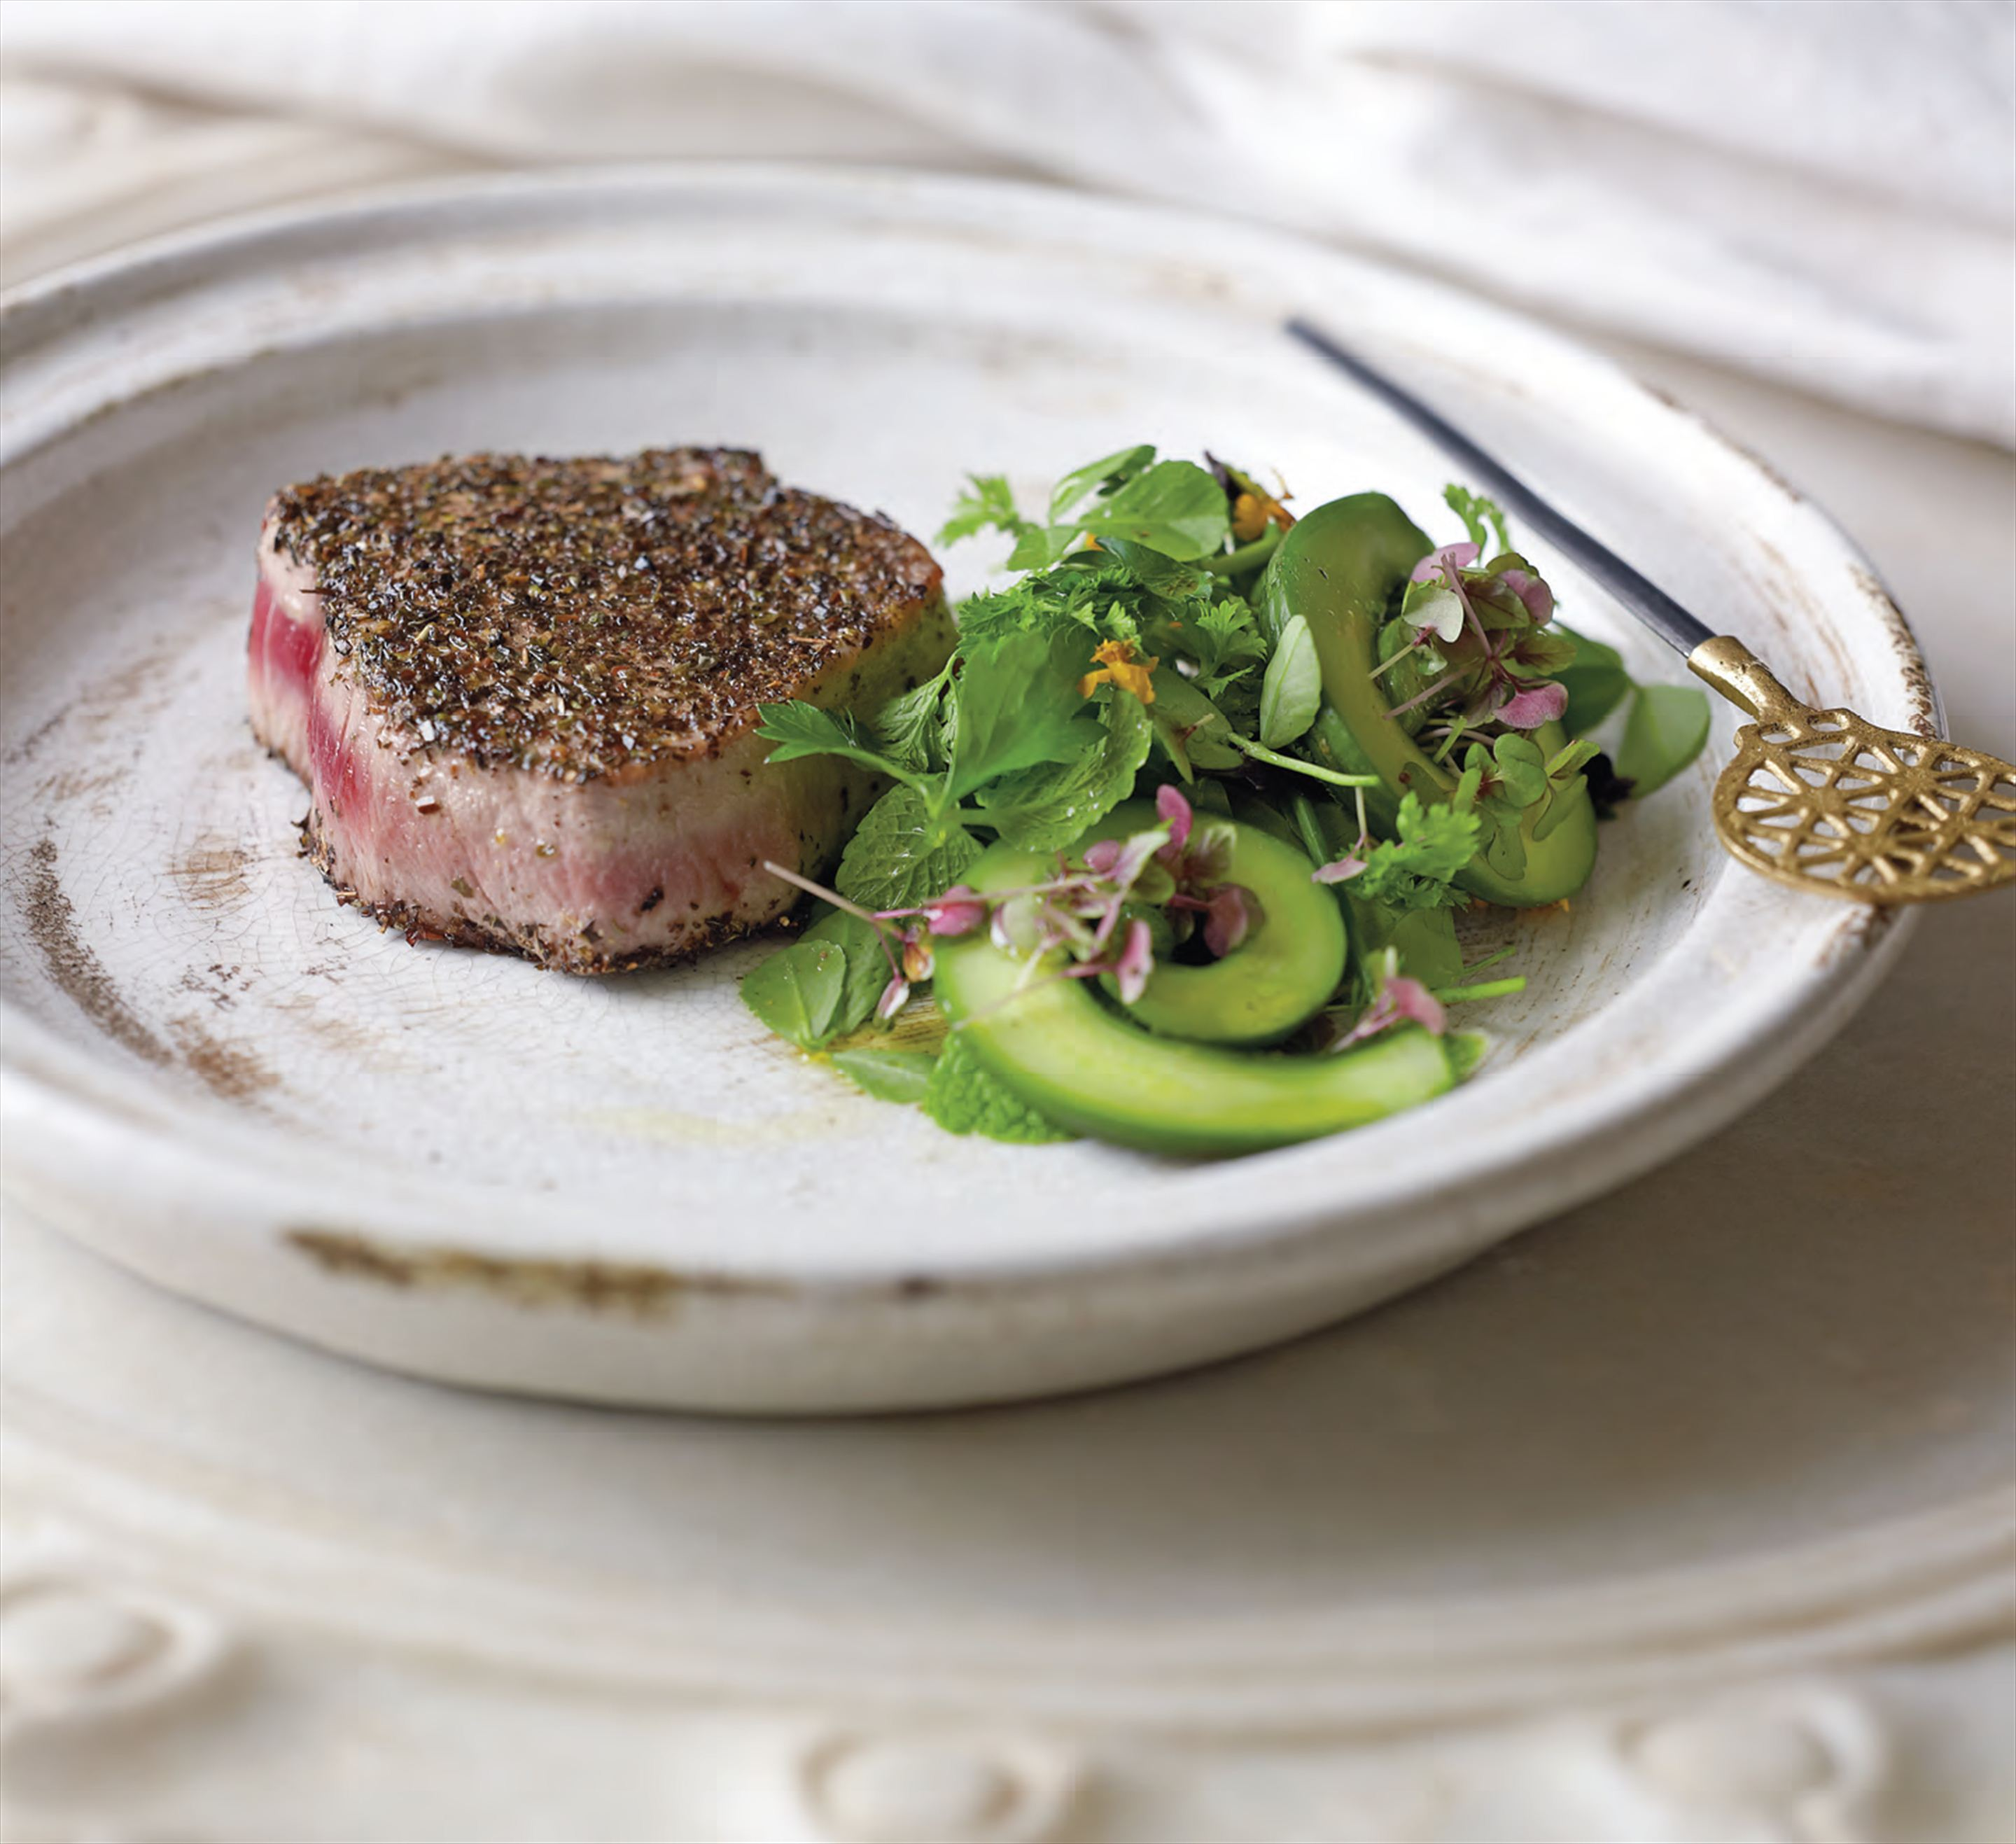 Tuna steaks with dried mint, oregano and sumac